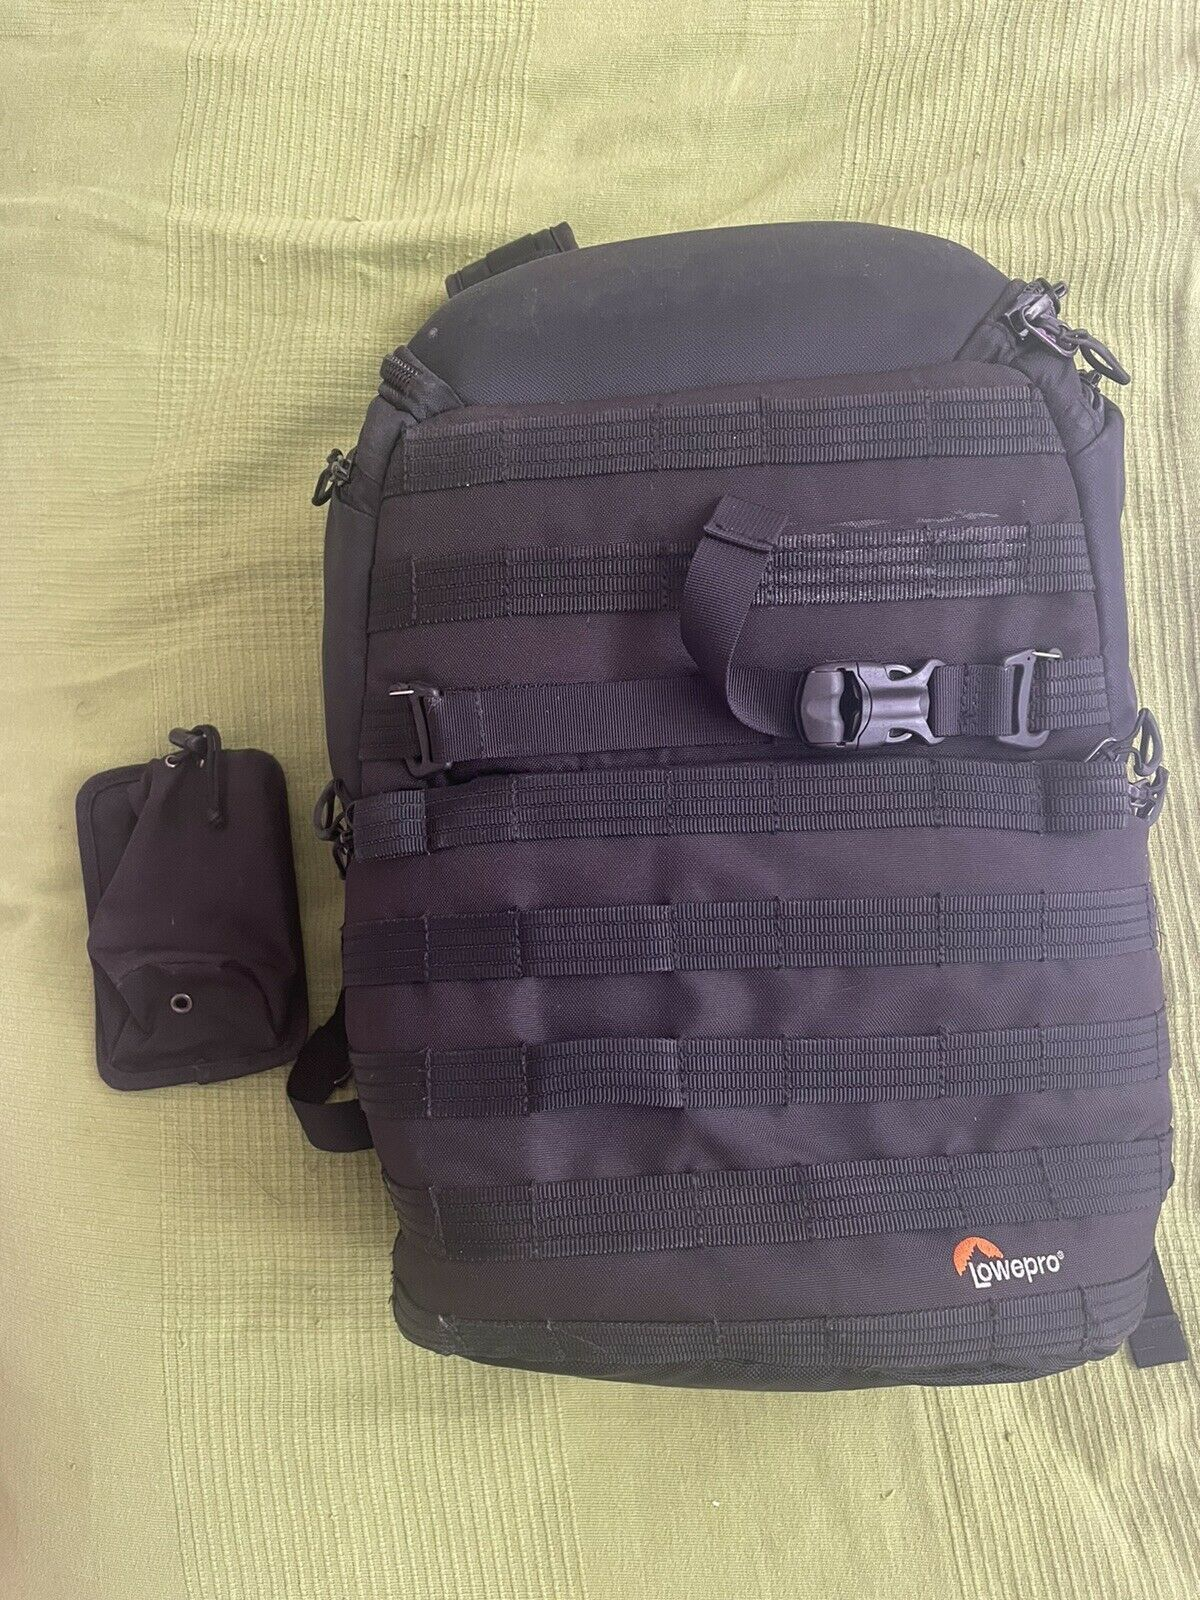 Used Lowepro ProTactic 450 AW Camera Backpack Bag